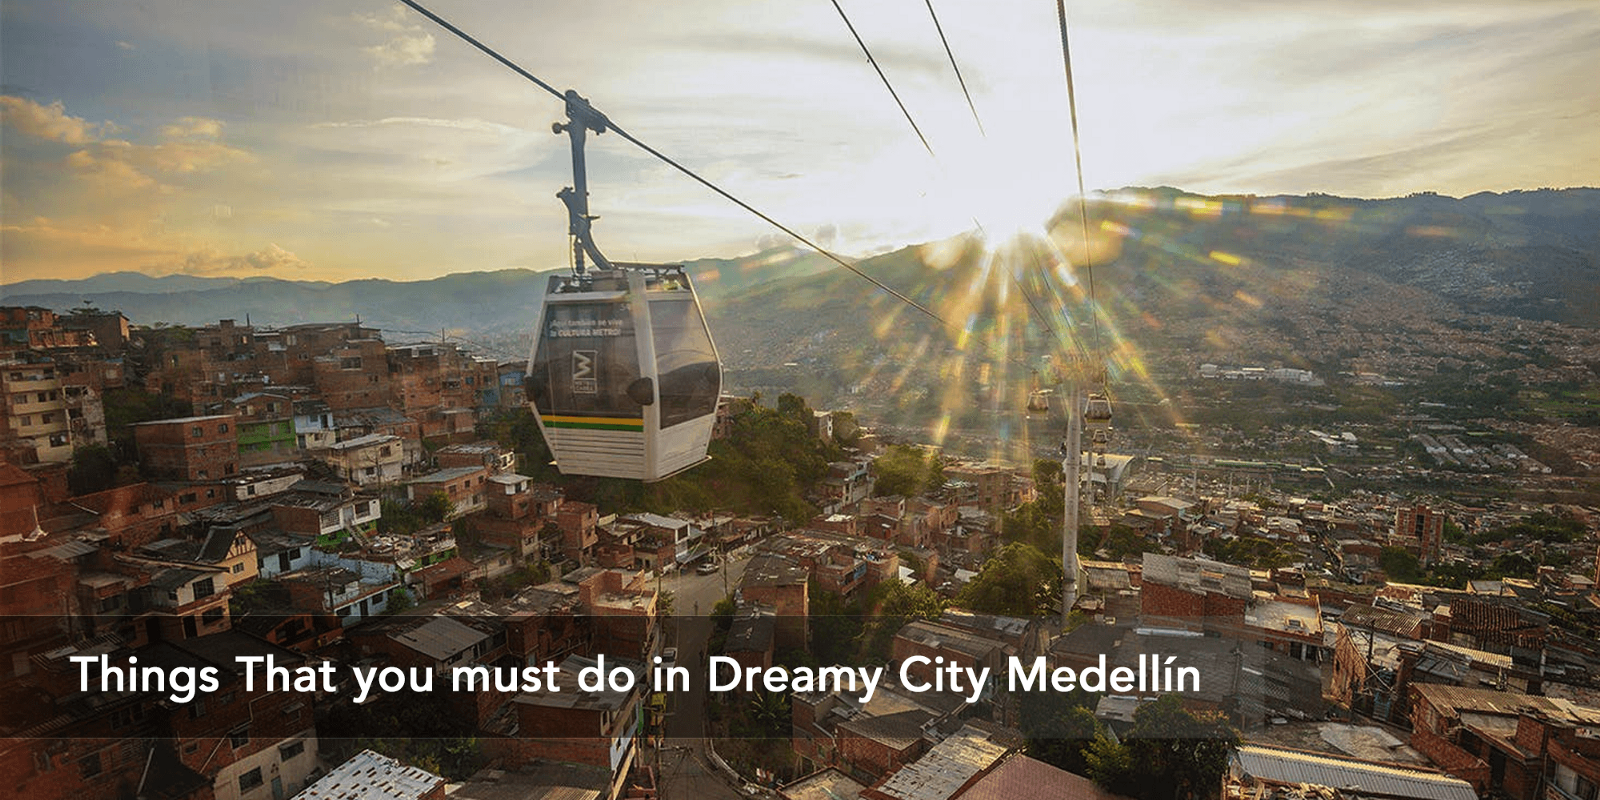 Things That You Must Do In Dreamy City Medellin